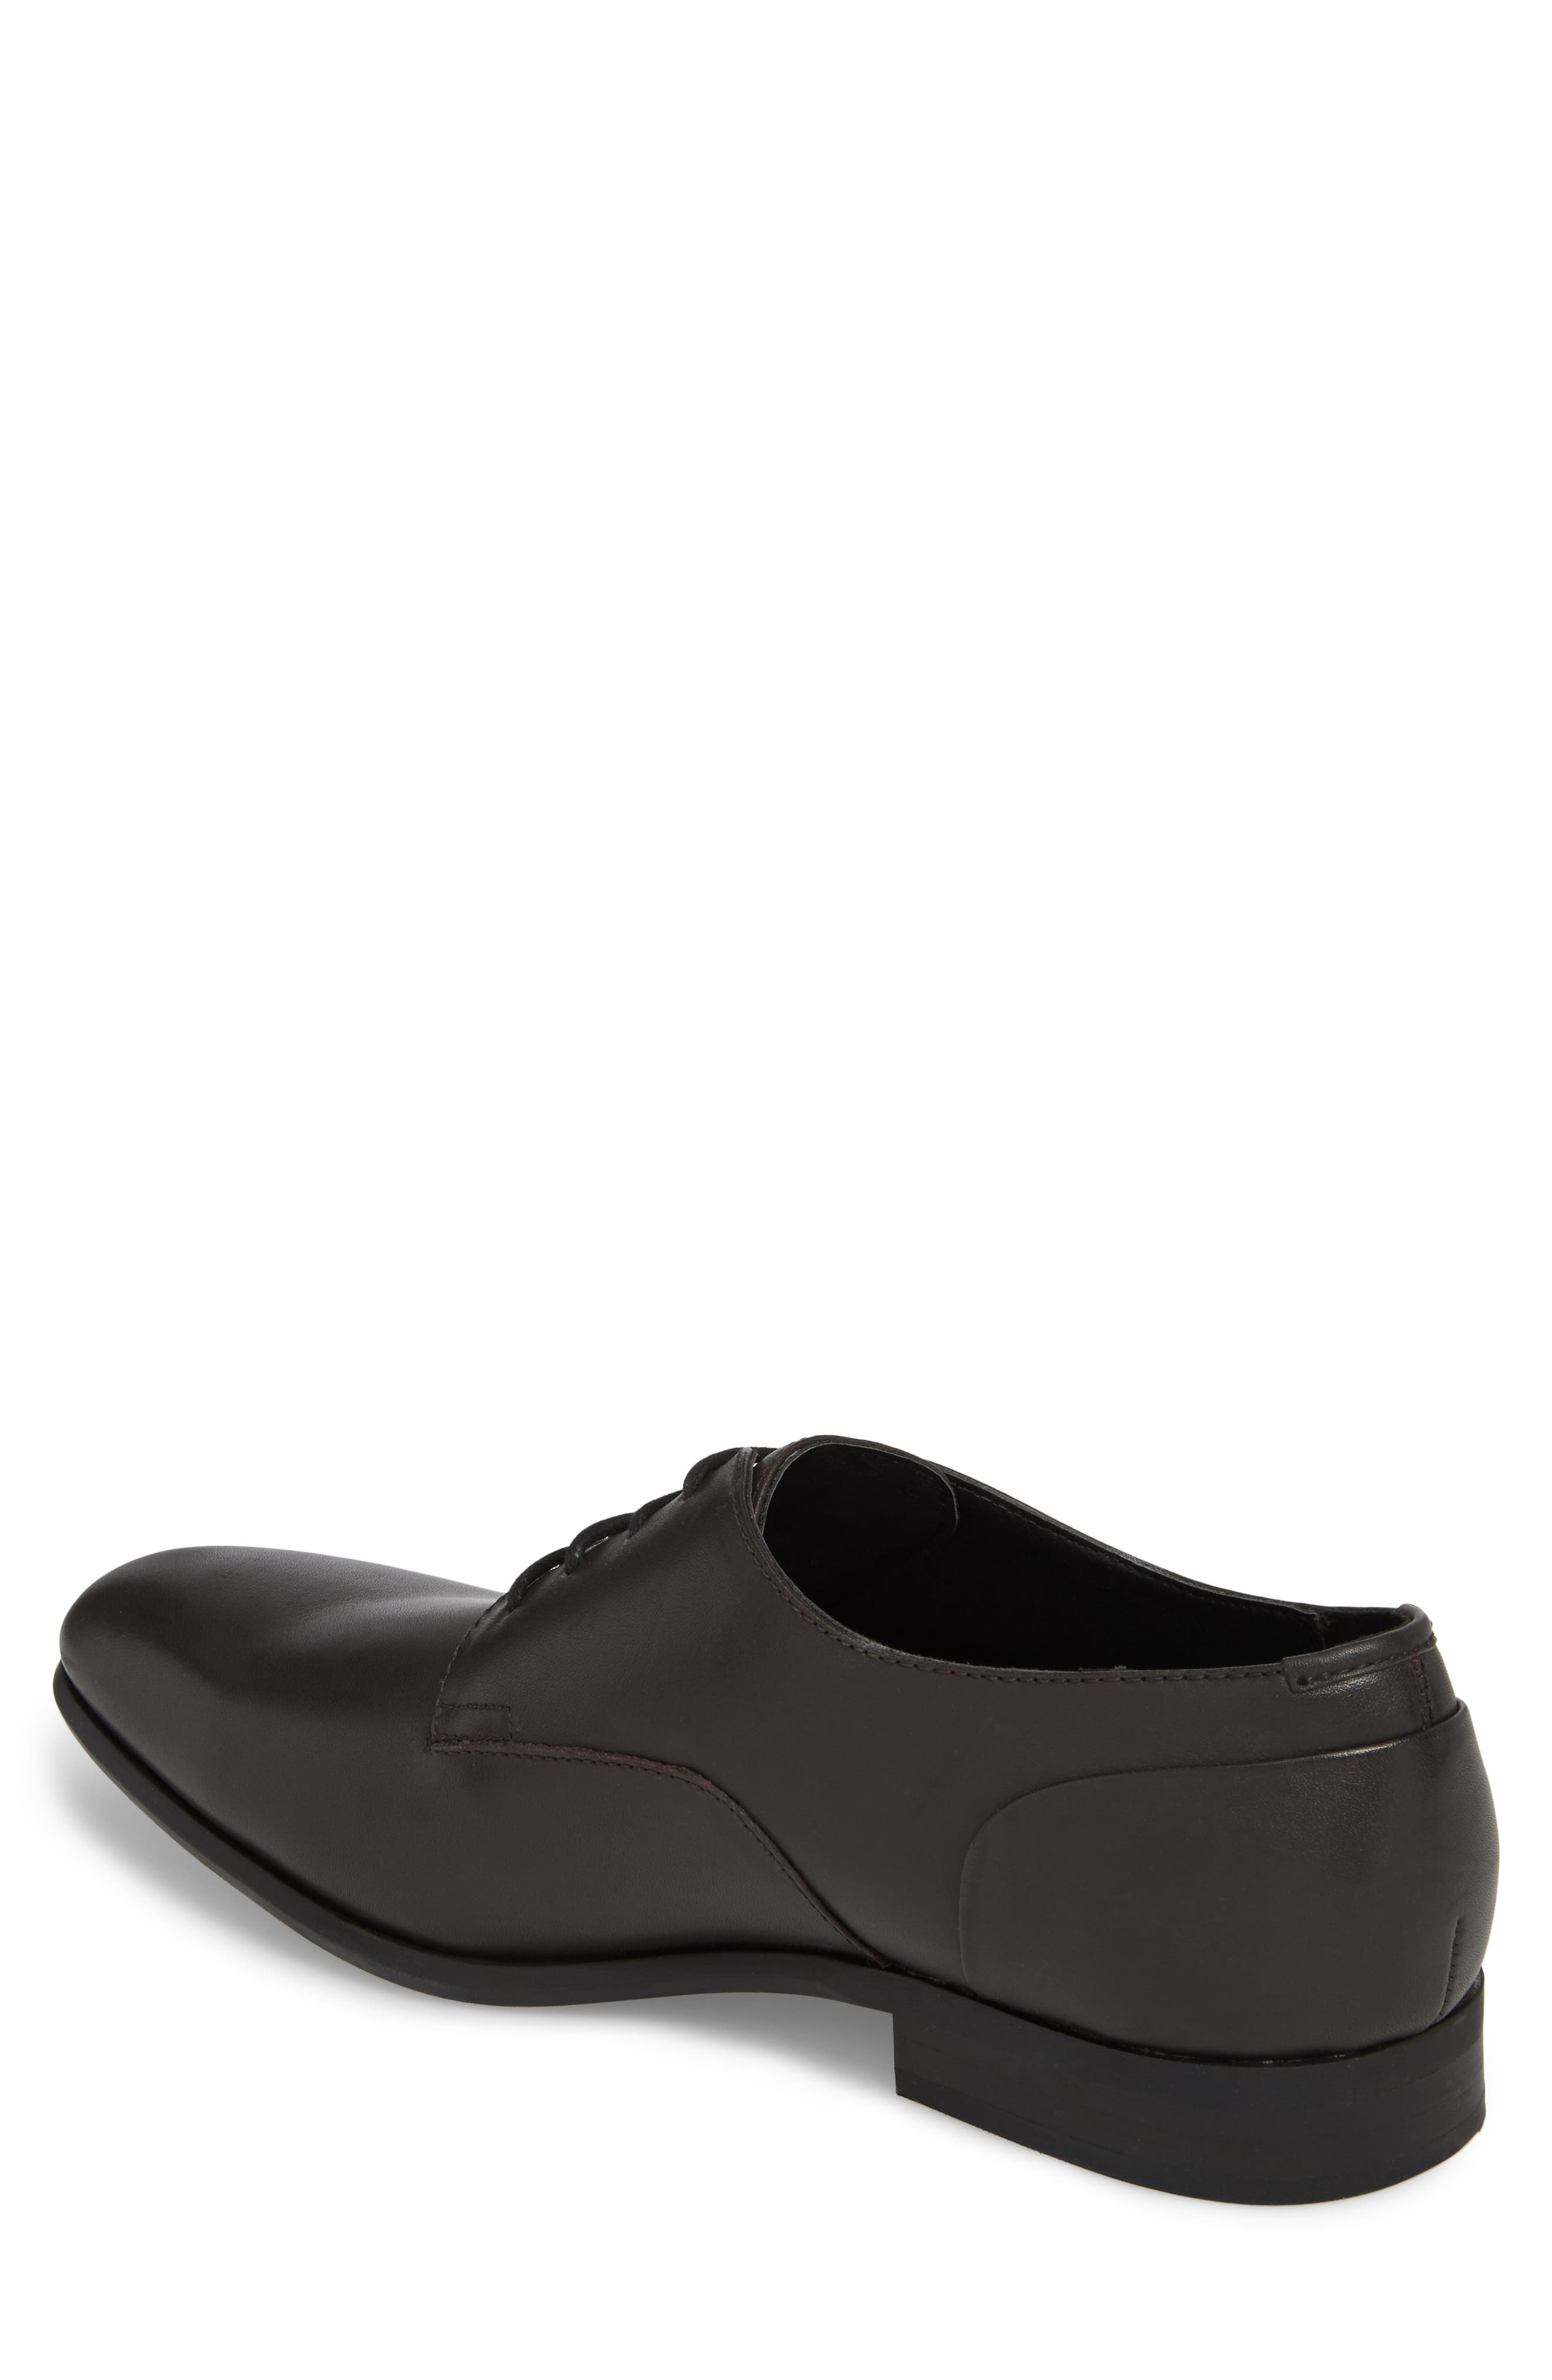 Lucca Plain Toe Derby,                             Alternate thumbnail 2, color,                             Dark Brown Leather